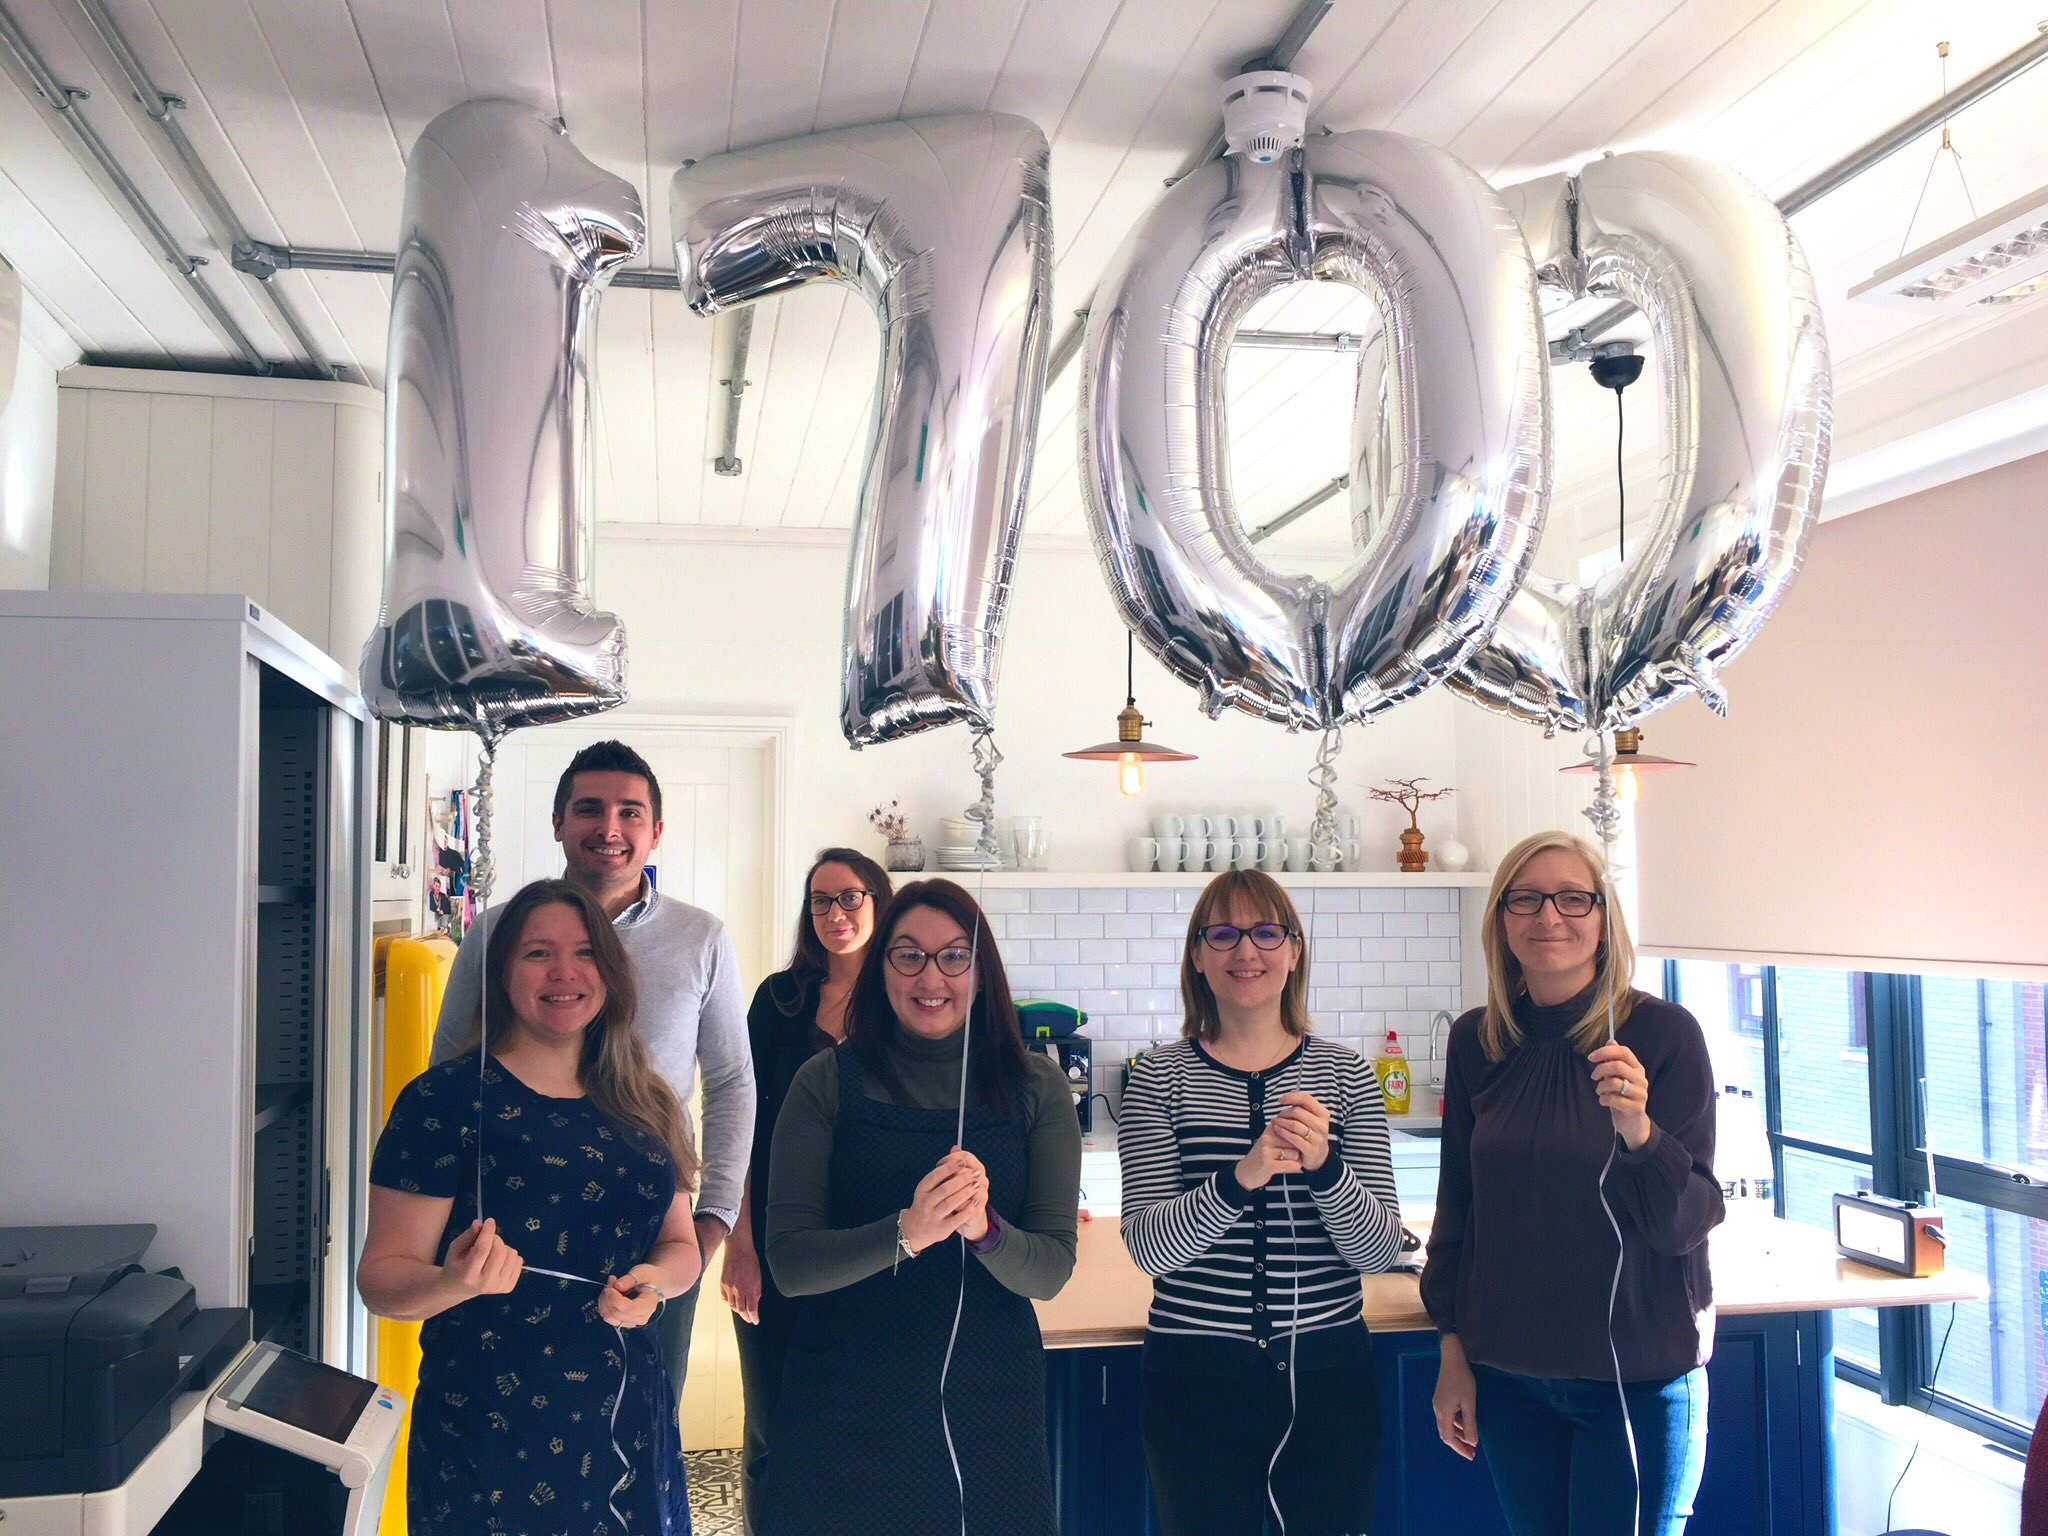 Charity photo: TROY pose with foil balloons '1700'